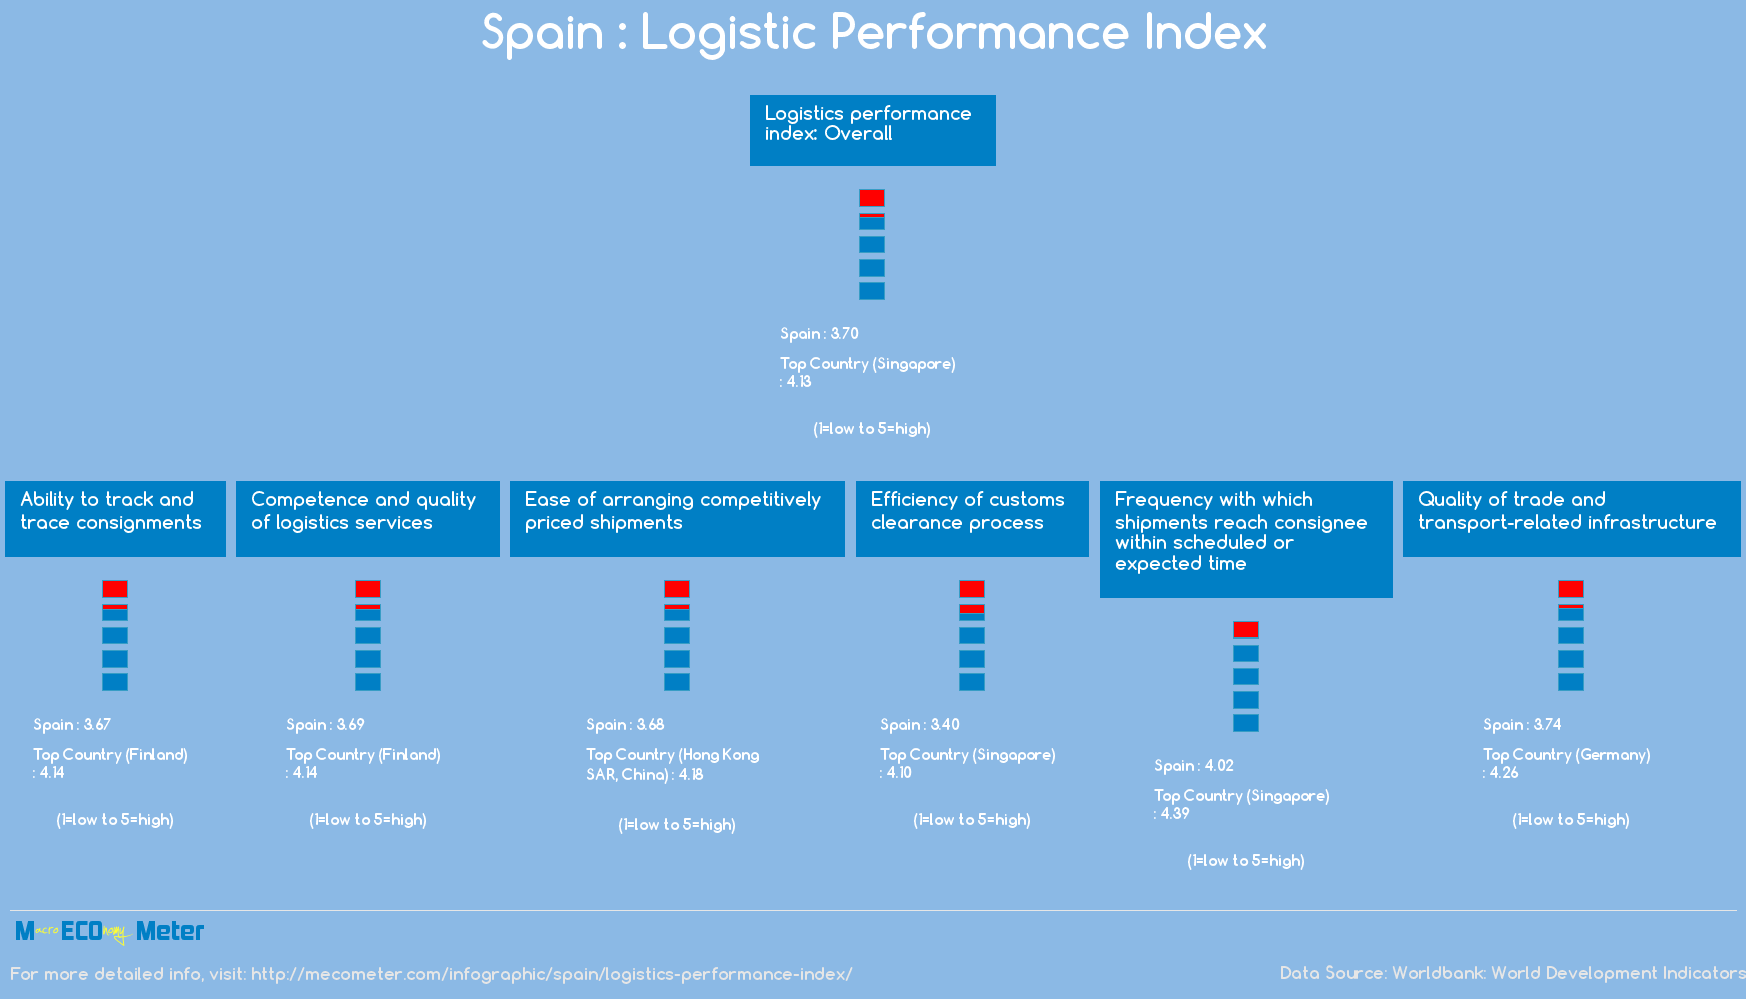 Spain : Logistic Performance Index